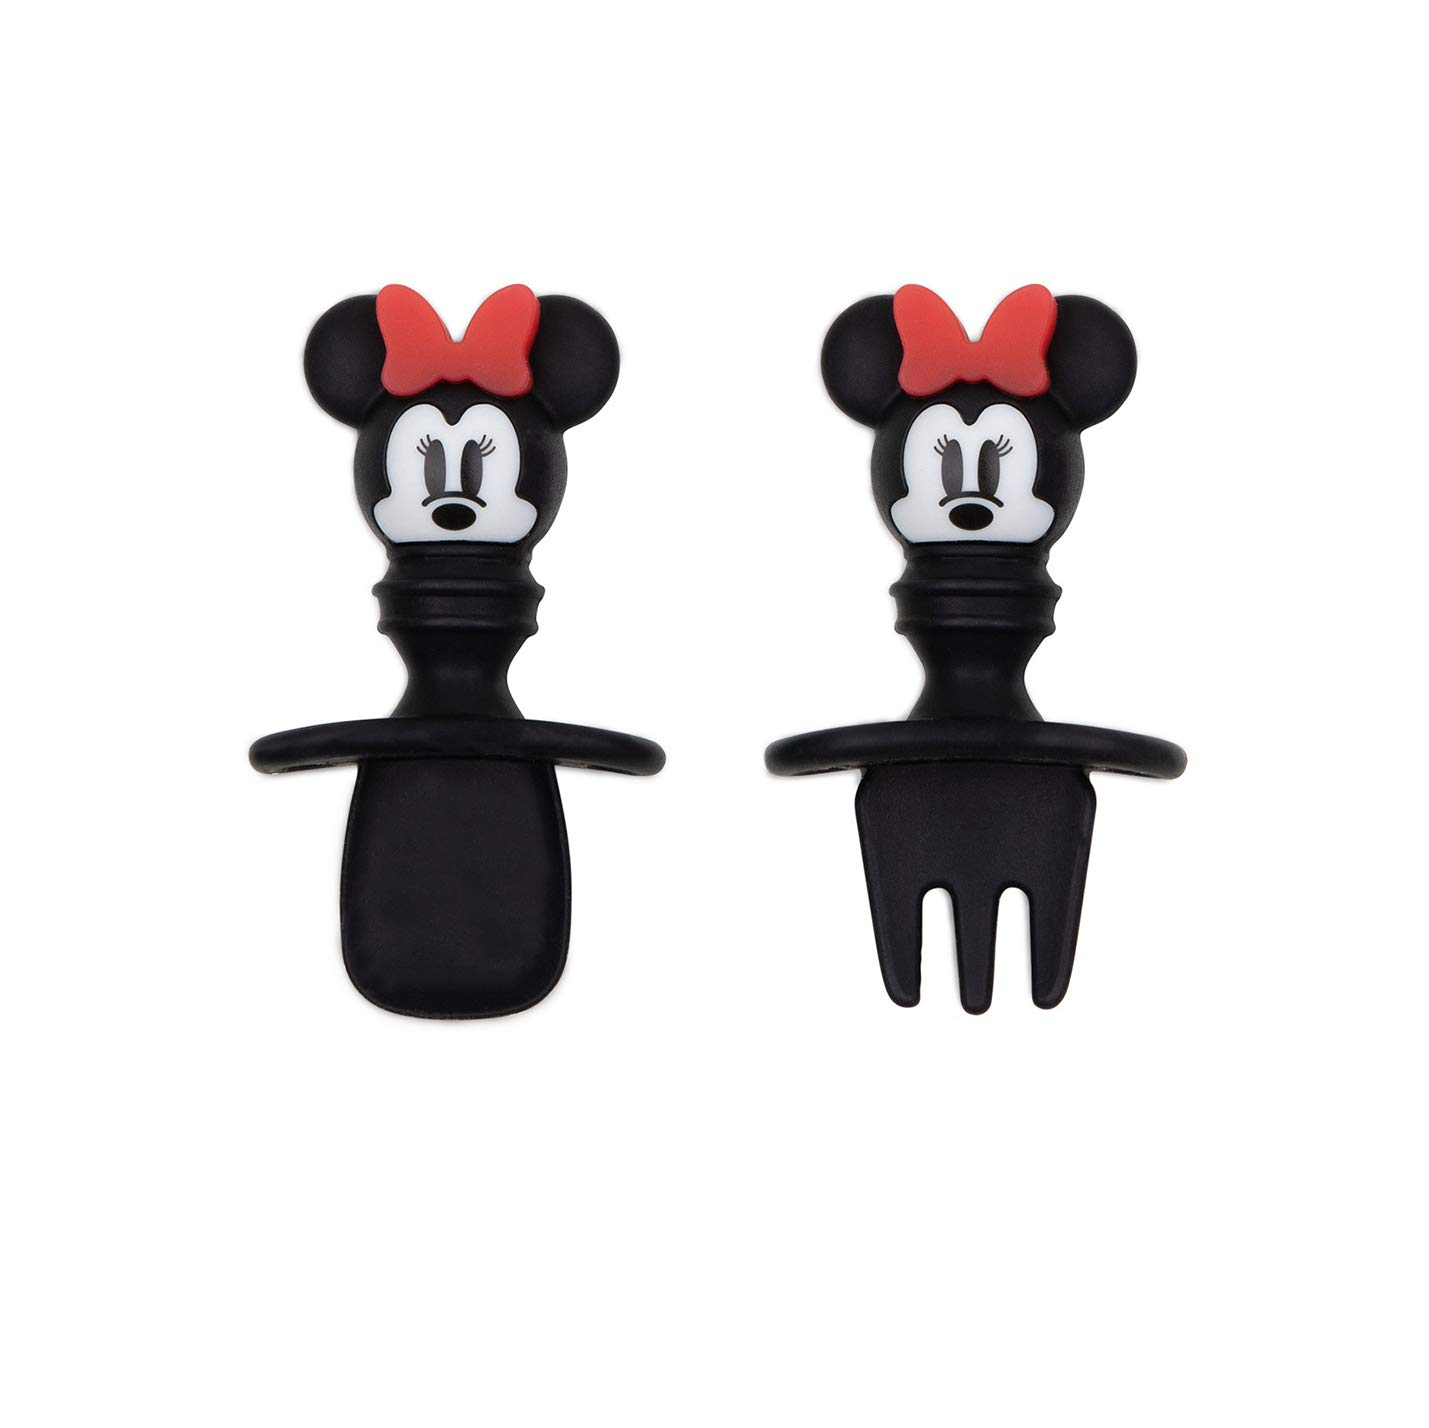 Bumkins Disney Silicone Chewtensils, Baby Fork & Spoon Set, Training Utensils, Baby Led Weaning Stage 1 for Ages 6 Months+ Minnie Mouse